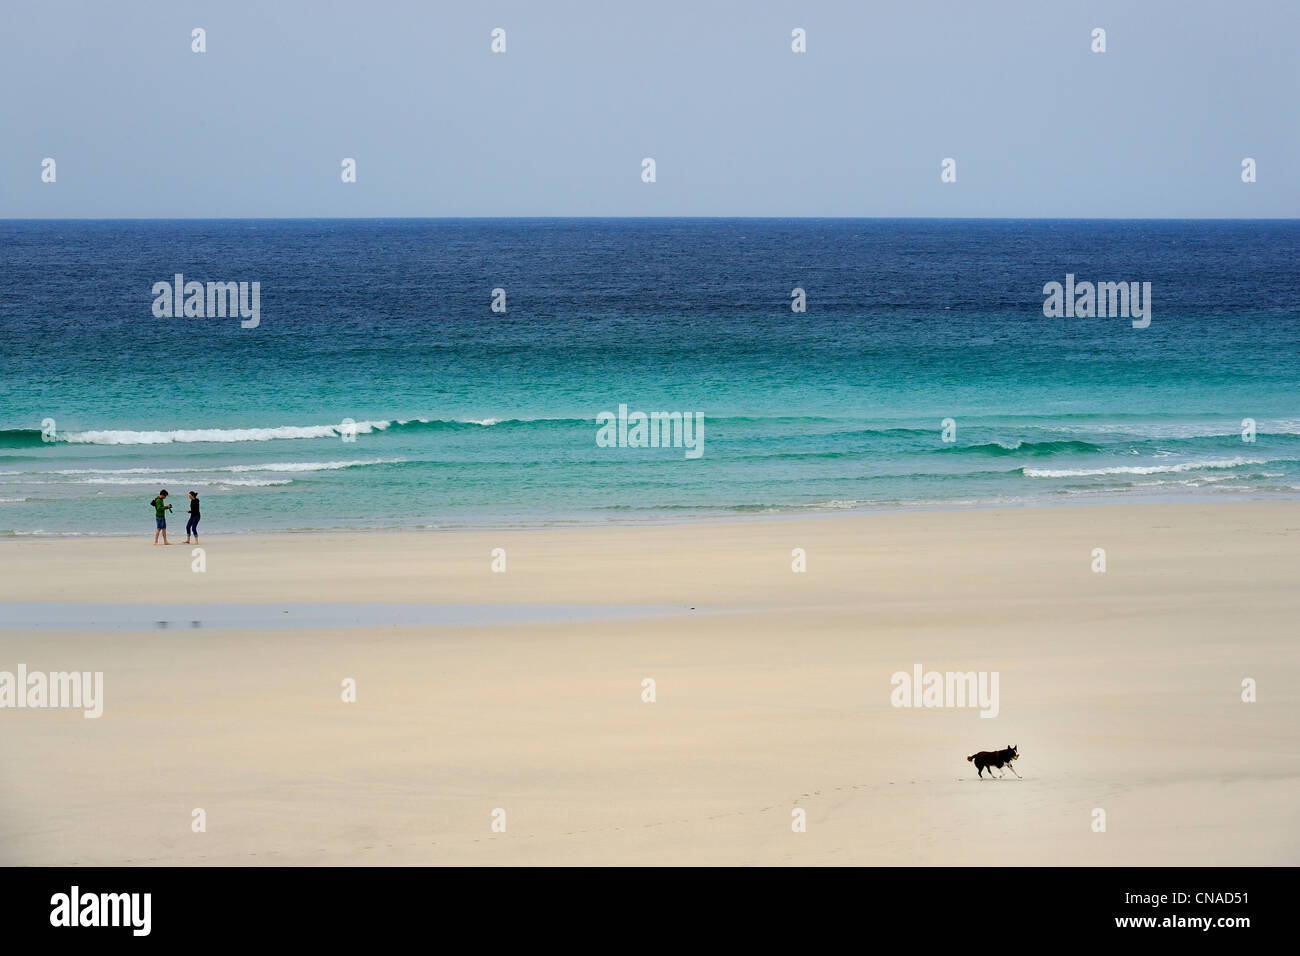 United Kingdom, Scotland, Outer Hebrides, Isle of Barra, beach behind the Barra airport - Stock Image